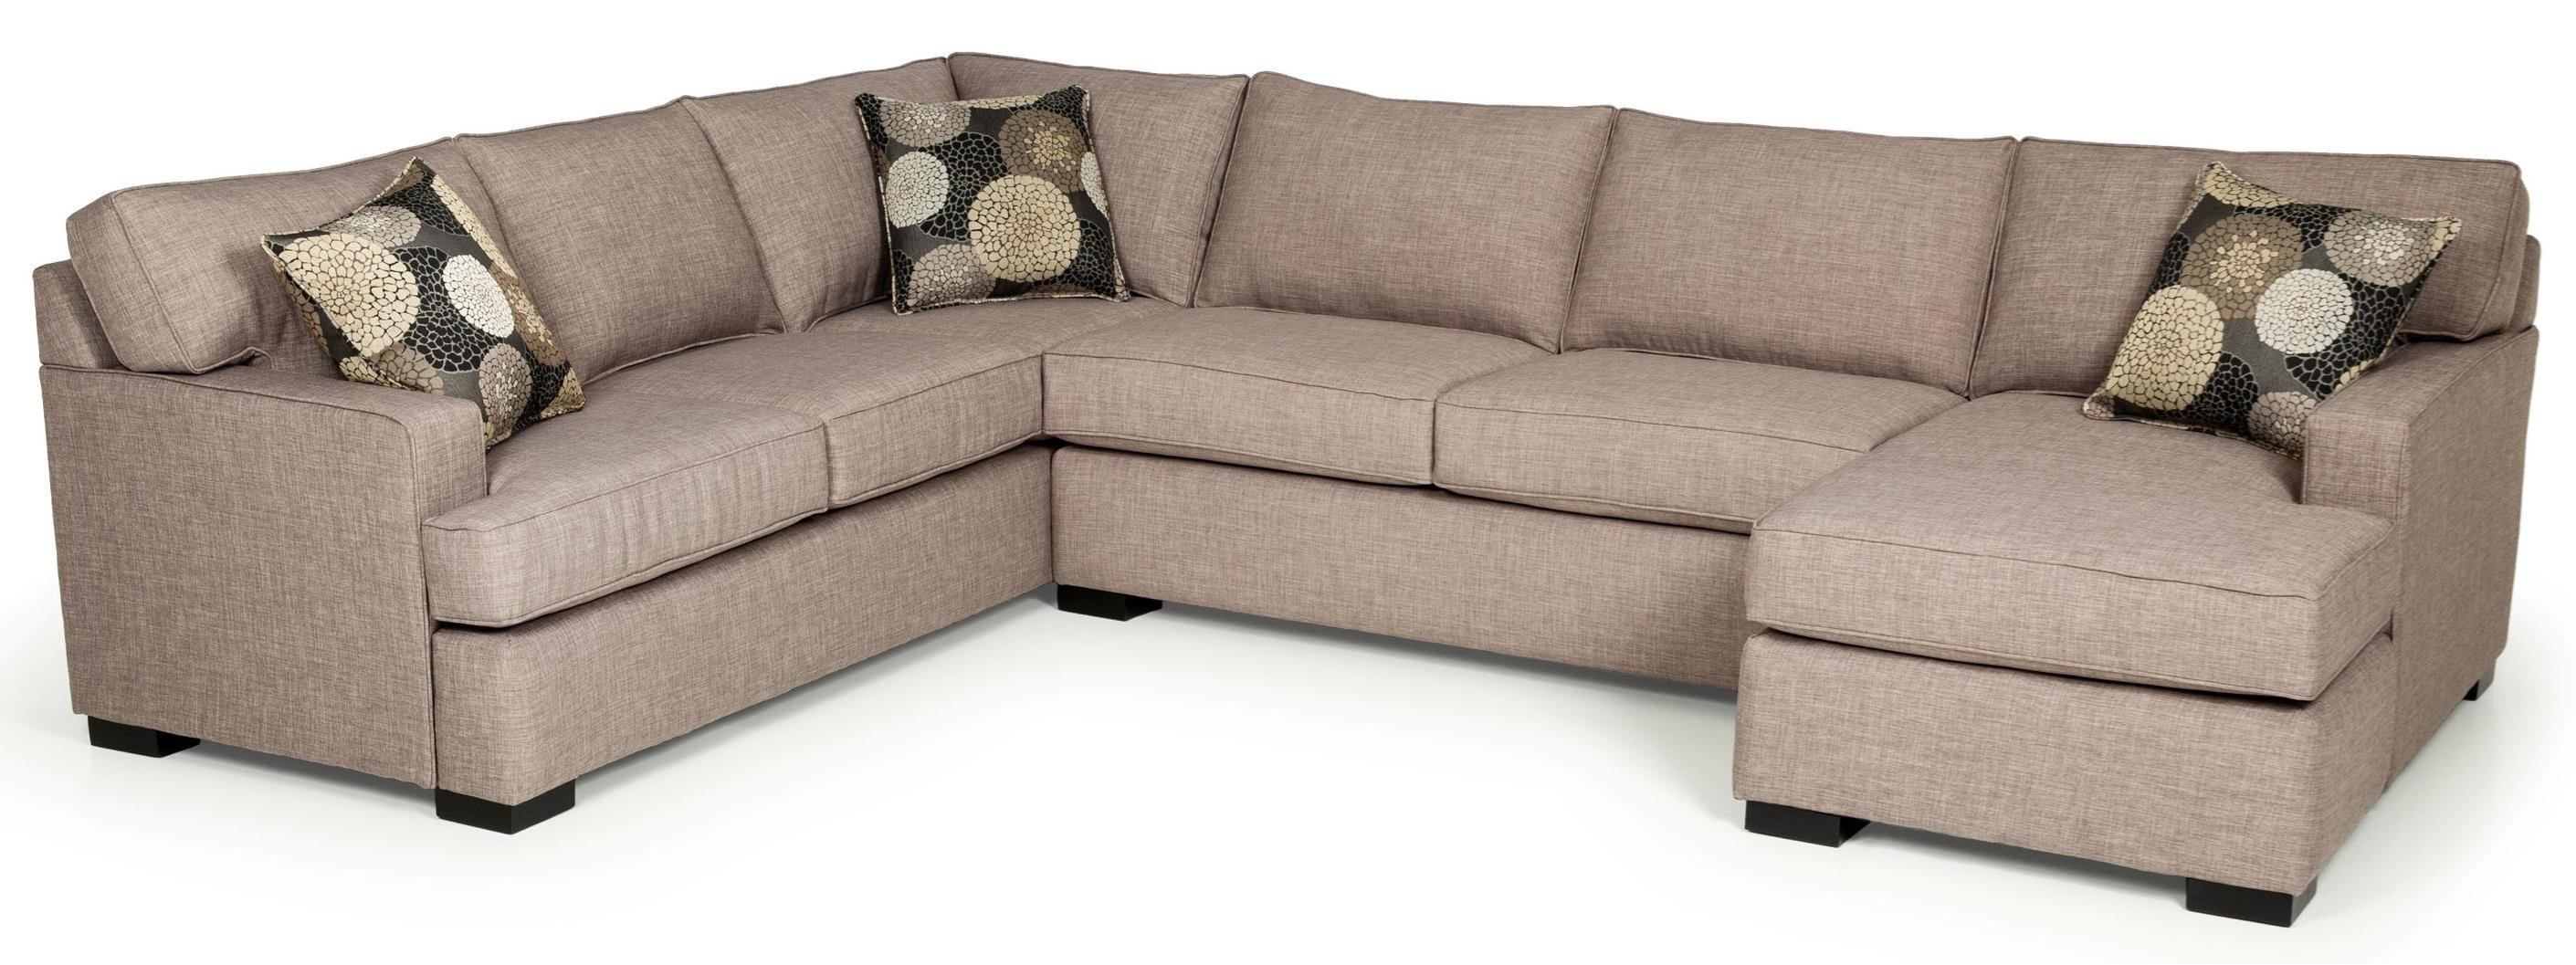 146 Sectional Sofa by Stanton at Wilson's Furniture